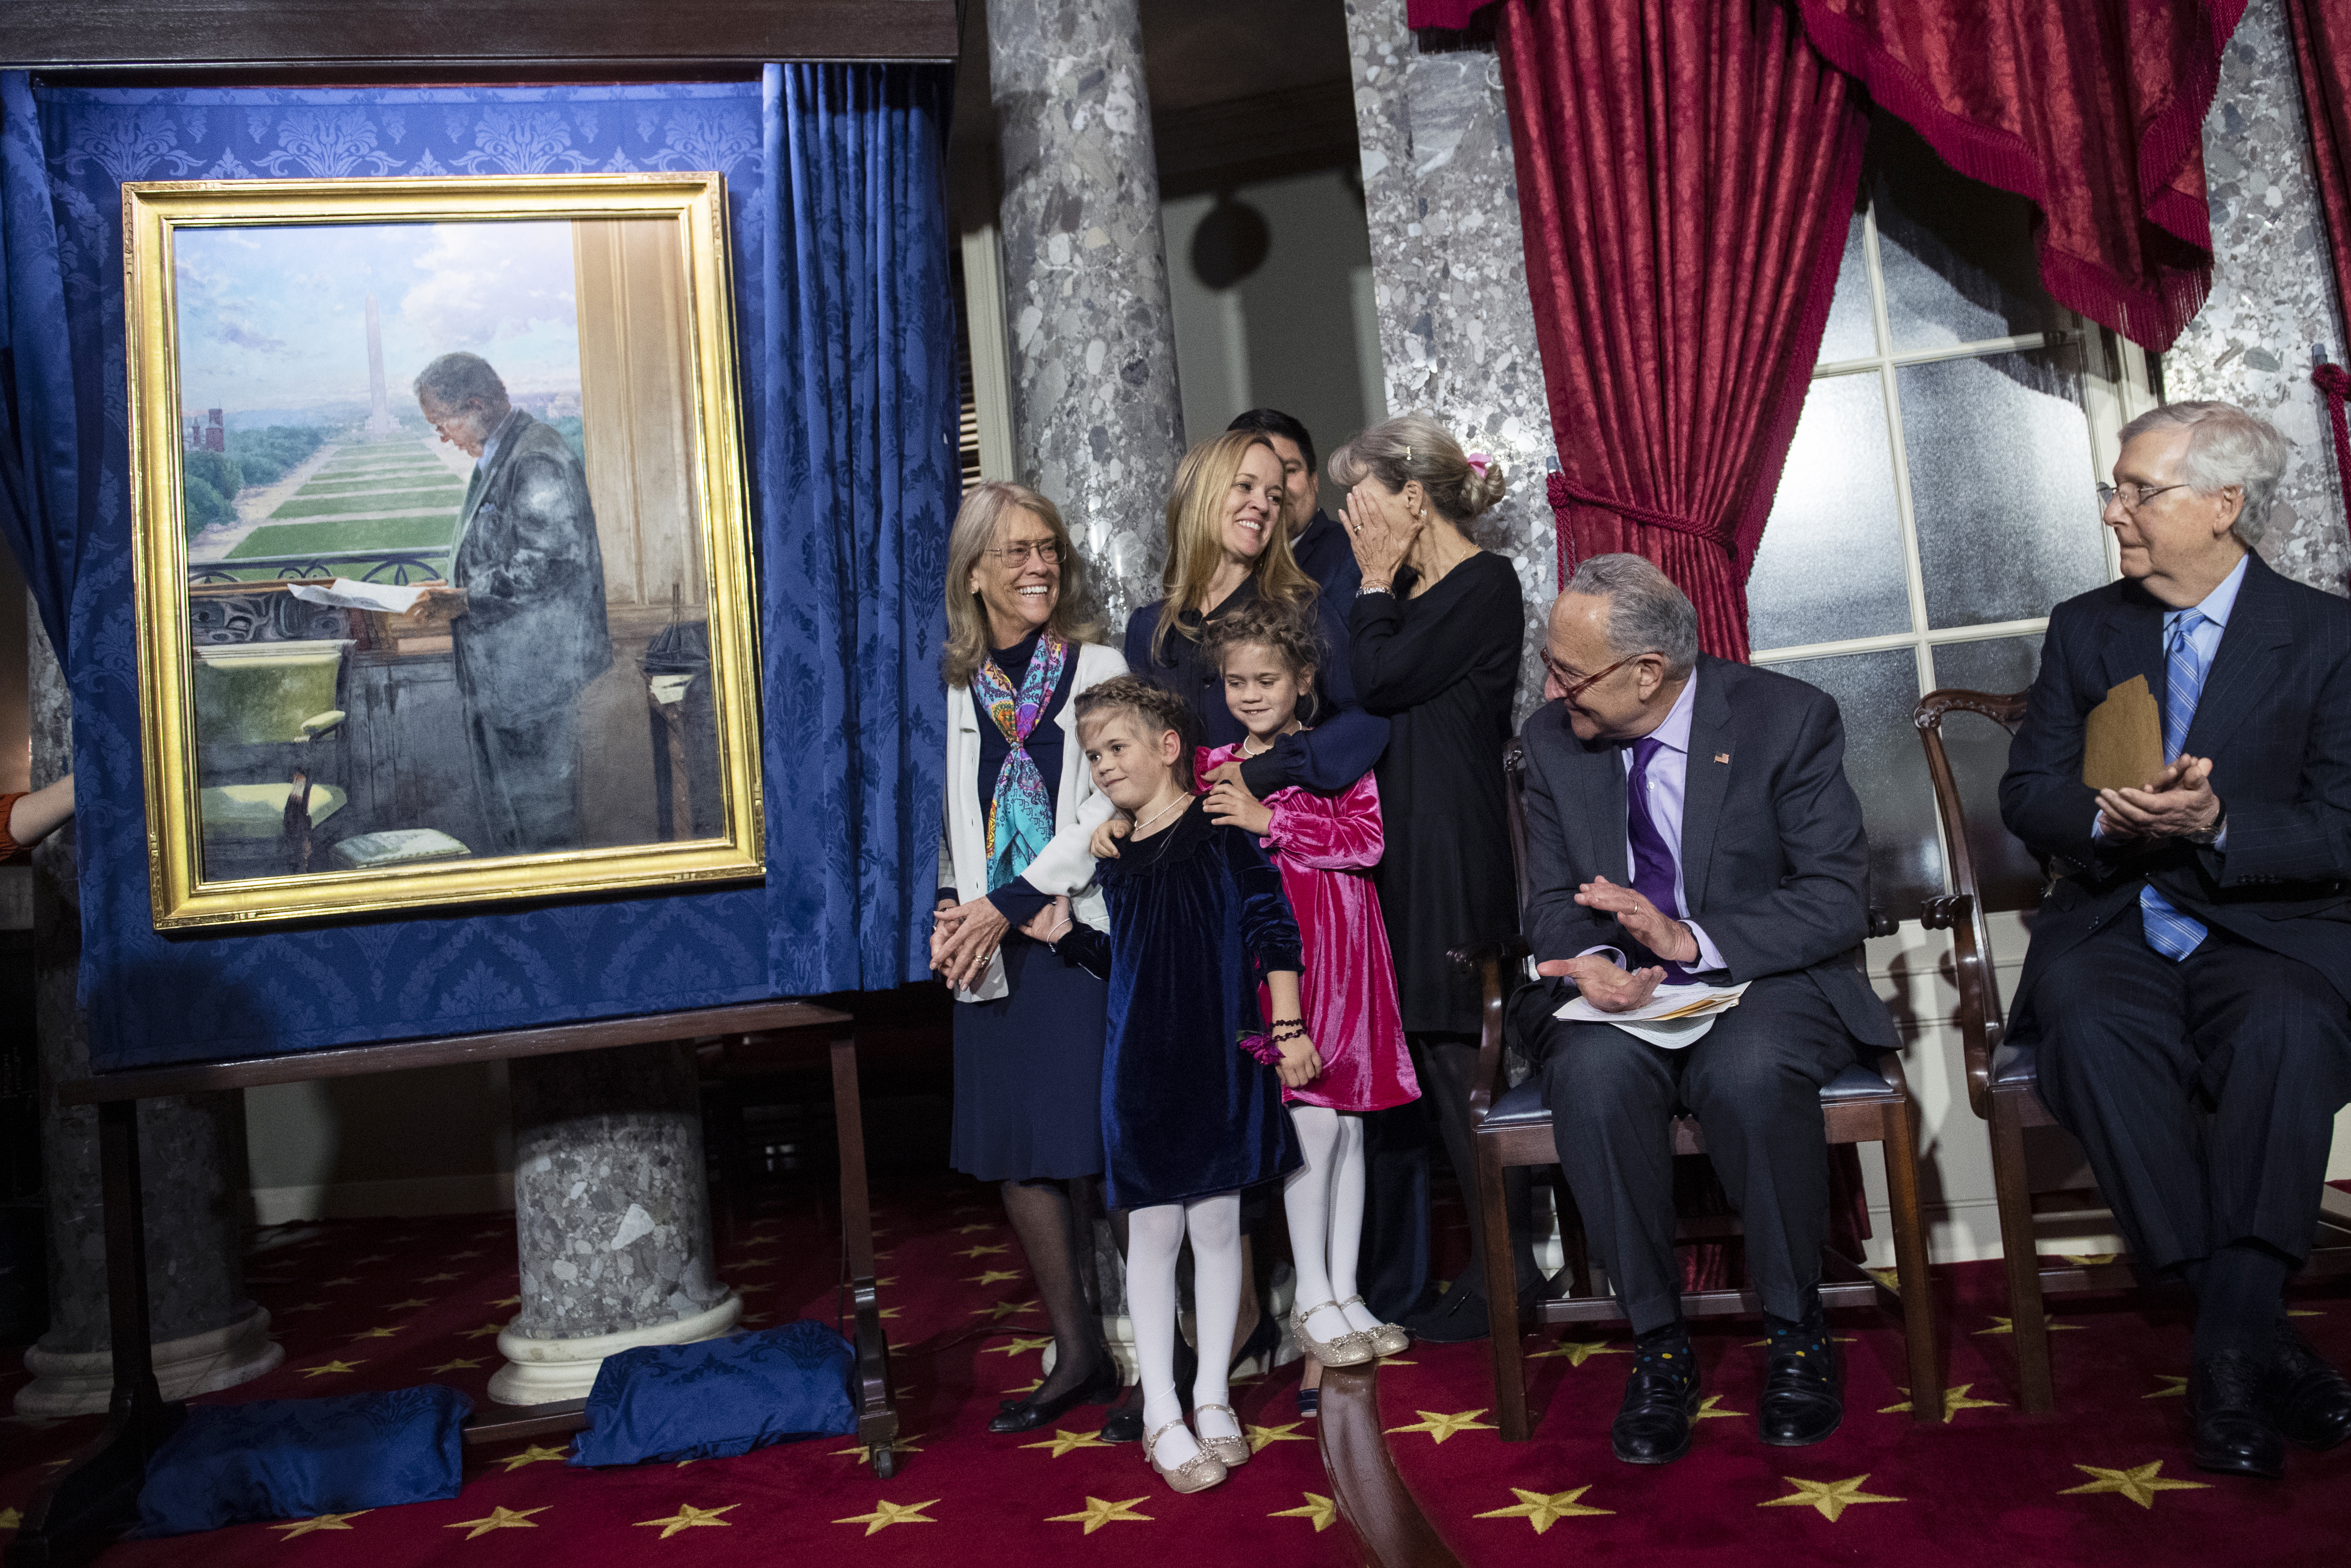 UNITED STATES - OCTOBER 23: Catherine Stevens, far left, the widow of the late Sen. Ted Stevens, R-Alaska, attends the portrait unveiling for the Senator, with family members Senate Majority Leader Mitch McConnell, R-Ky., right, and Senate Minority Leader Charles Schumer, D-N.Y., in the Old Senate Chamber on Wednesday, October 23, 2019. (Photo By Tom Williams/CQ Roll Call),